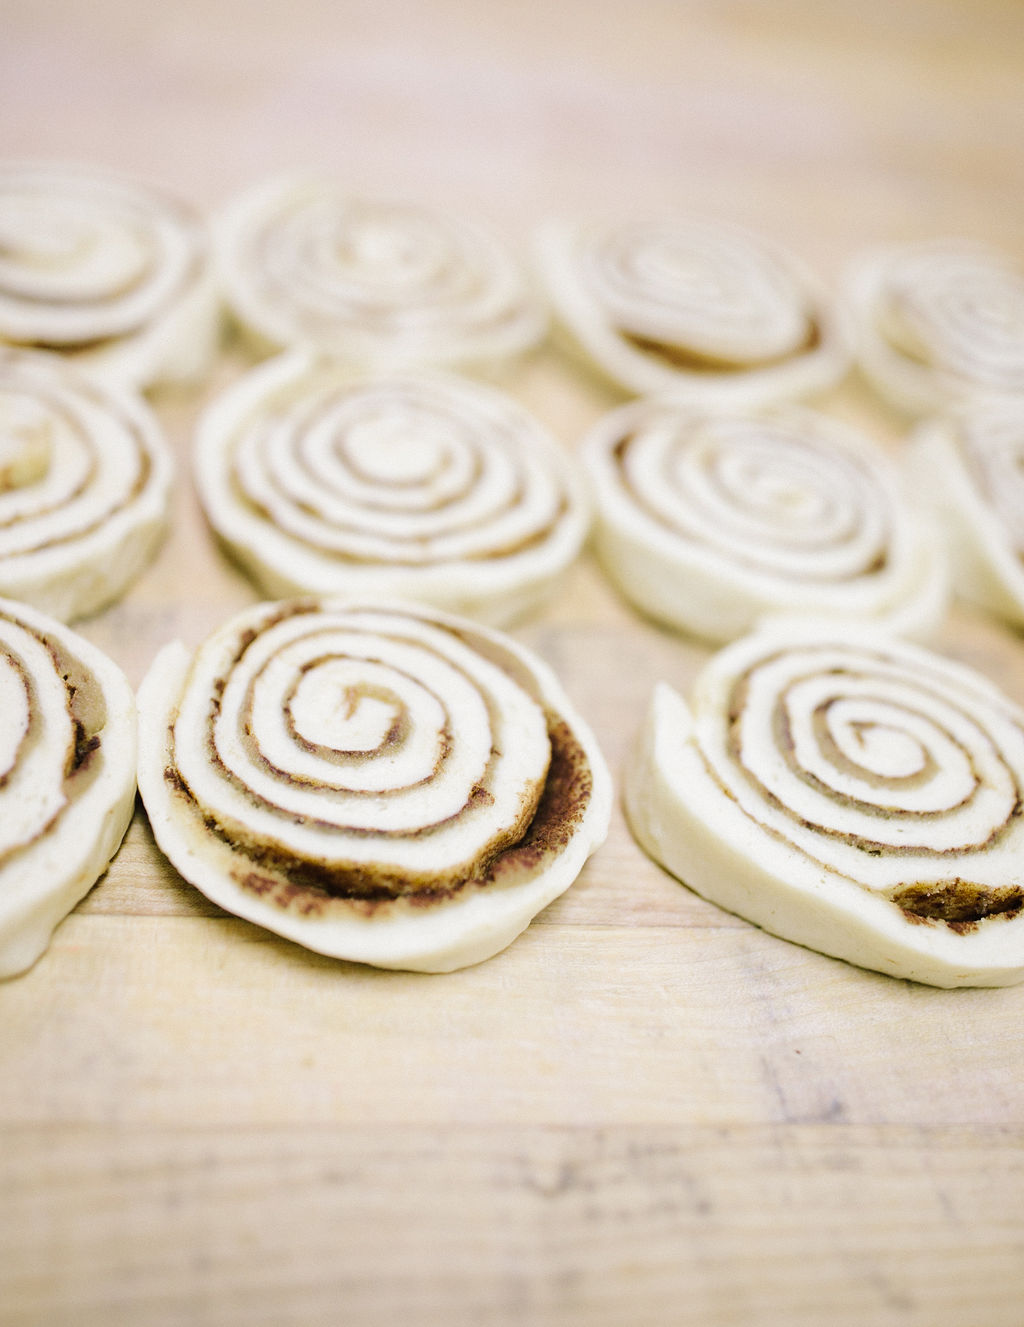 Our recommendation - It can be tough to choose your favorite sweets when you walk into a bakery. So ask about their changing seasonal flavors and we highly recommend their take and bake cinnamon rolls and their lemon bars!